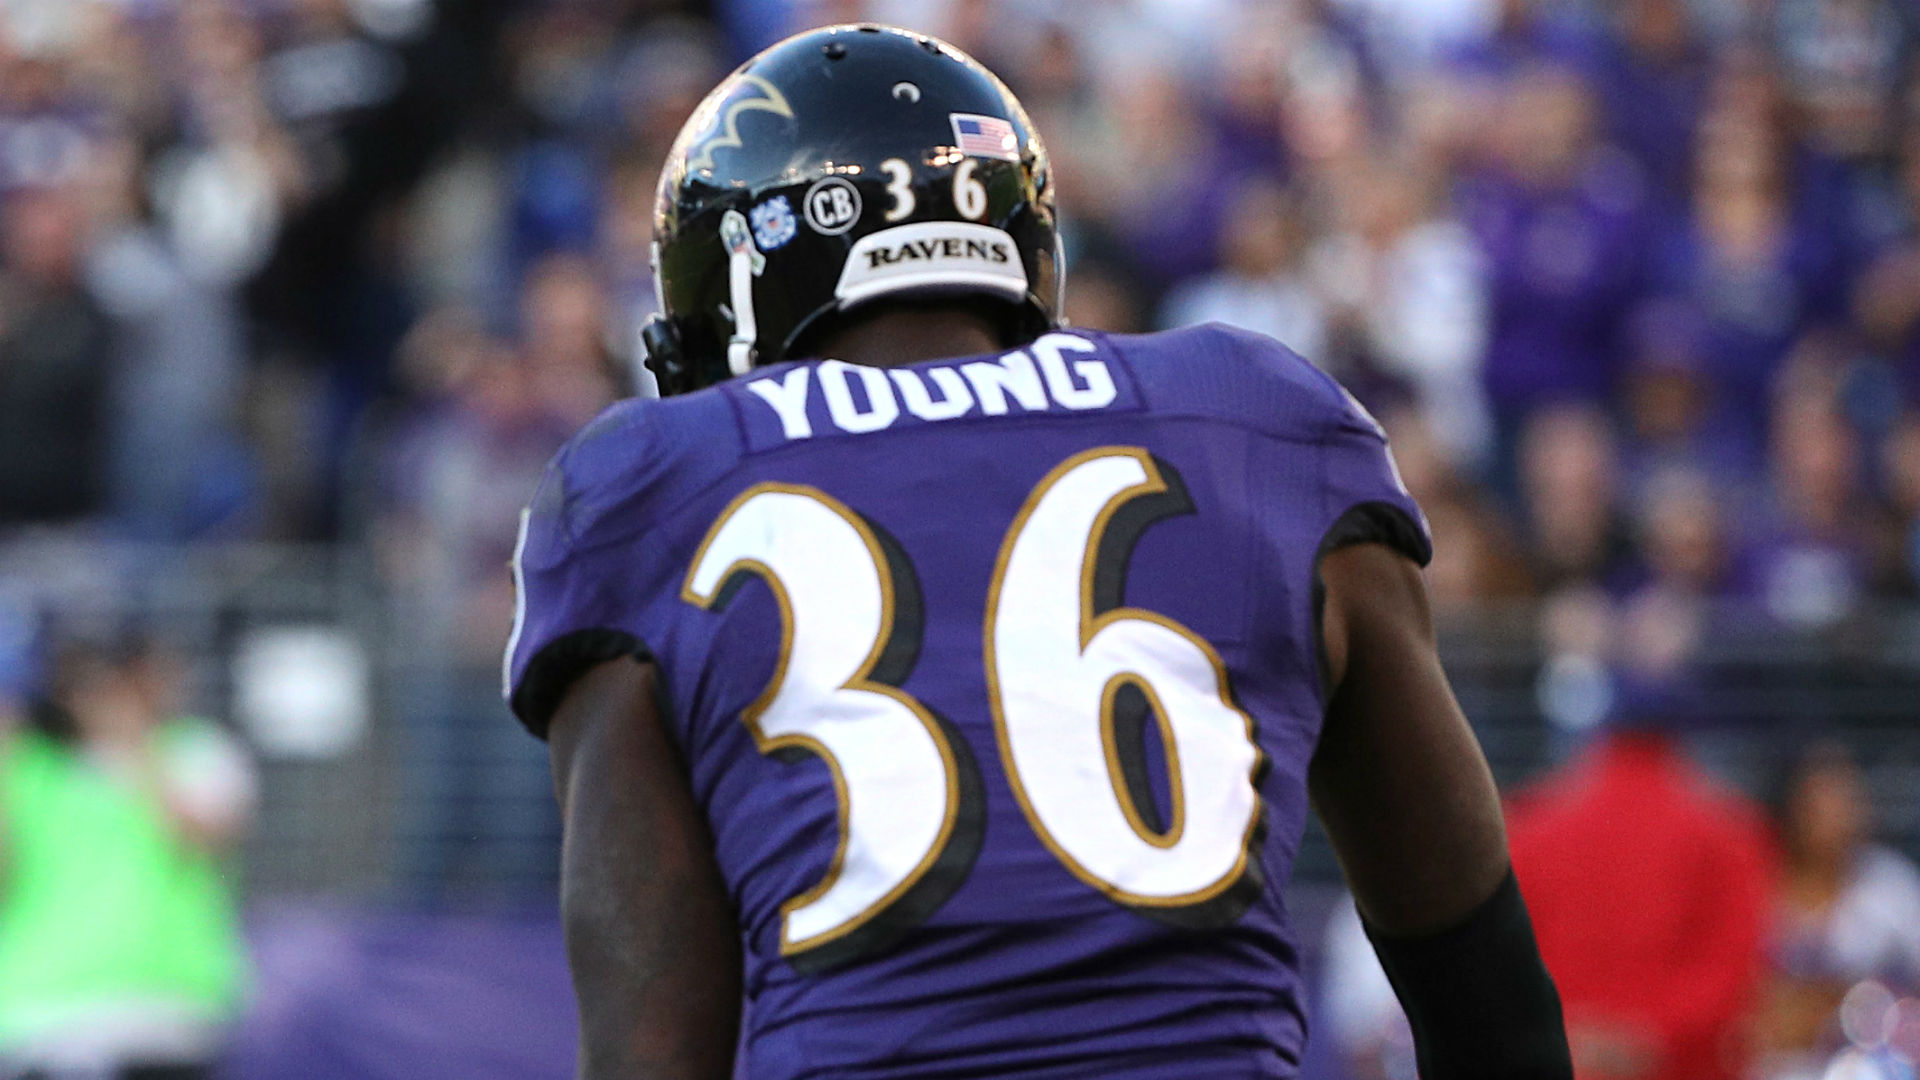 Ravens lose CB Tavon Young to torn ACL